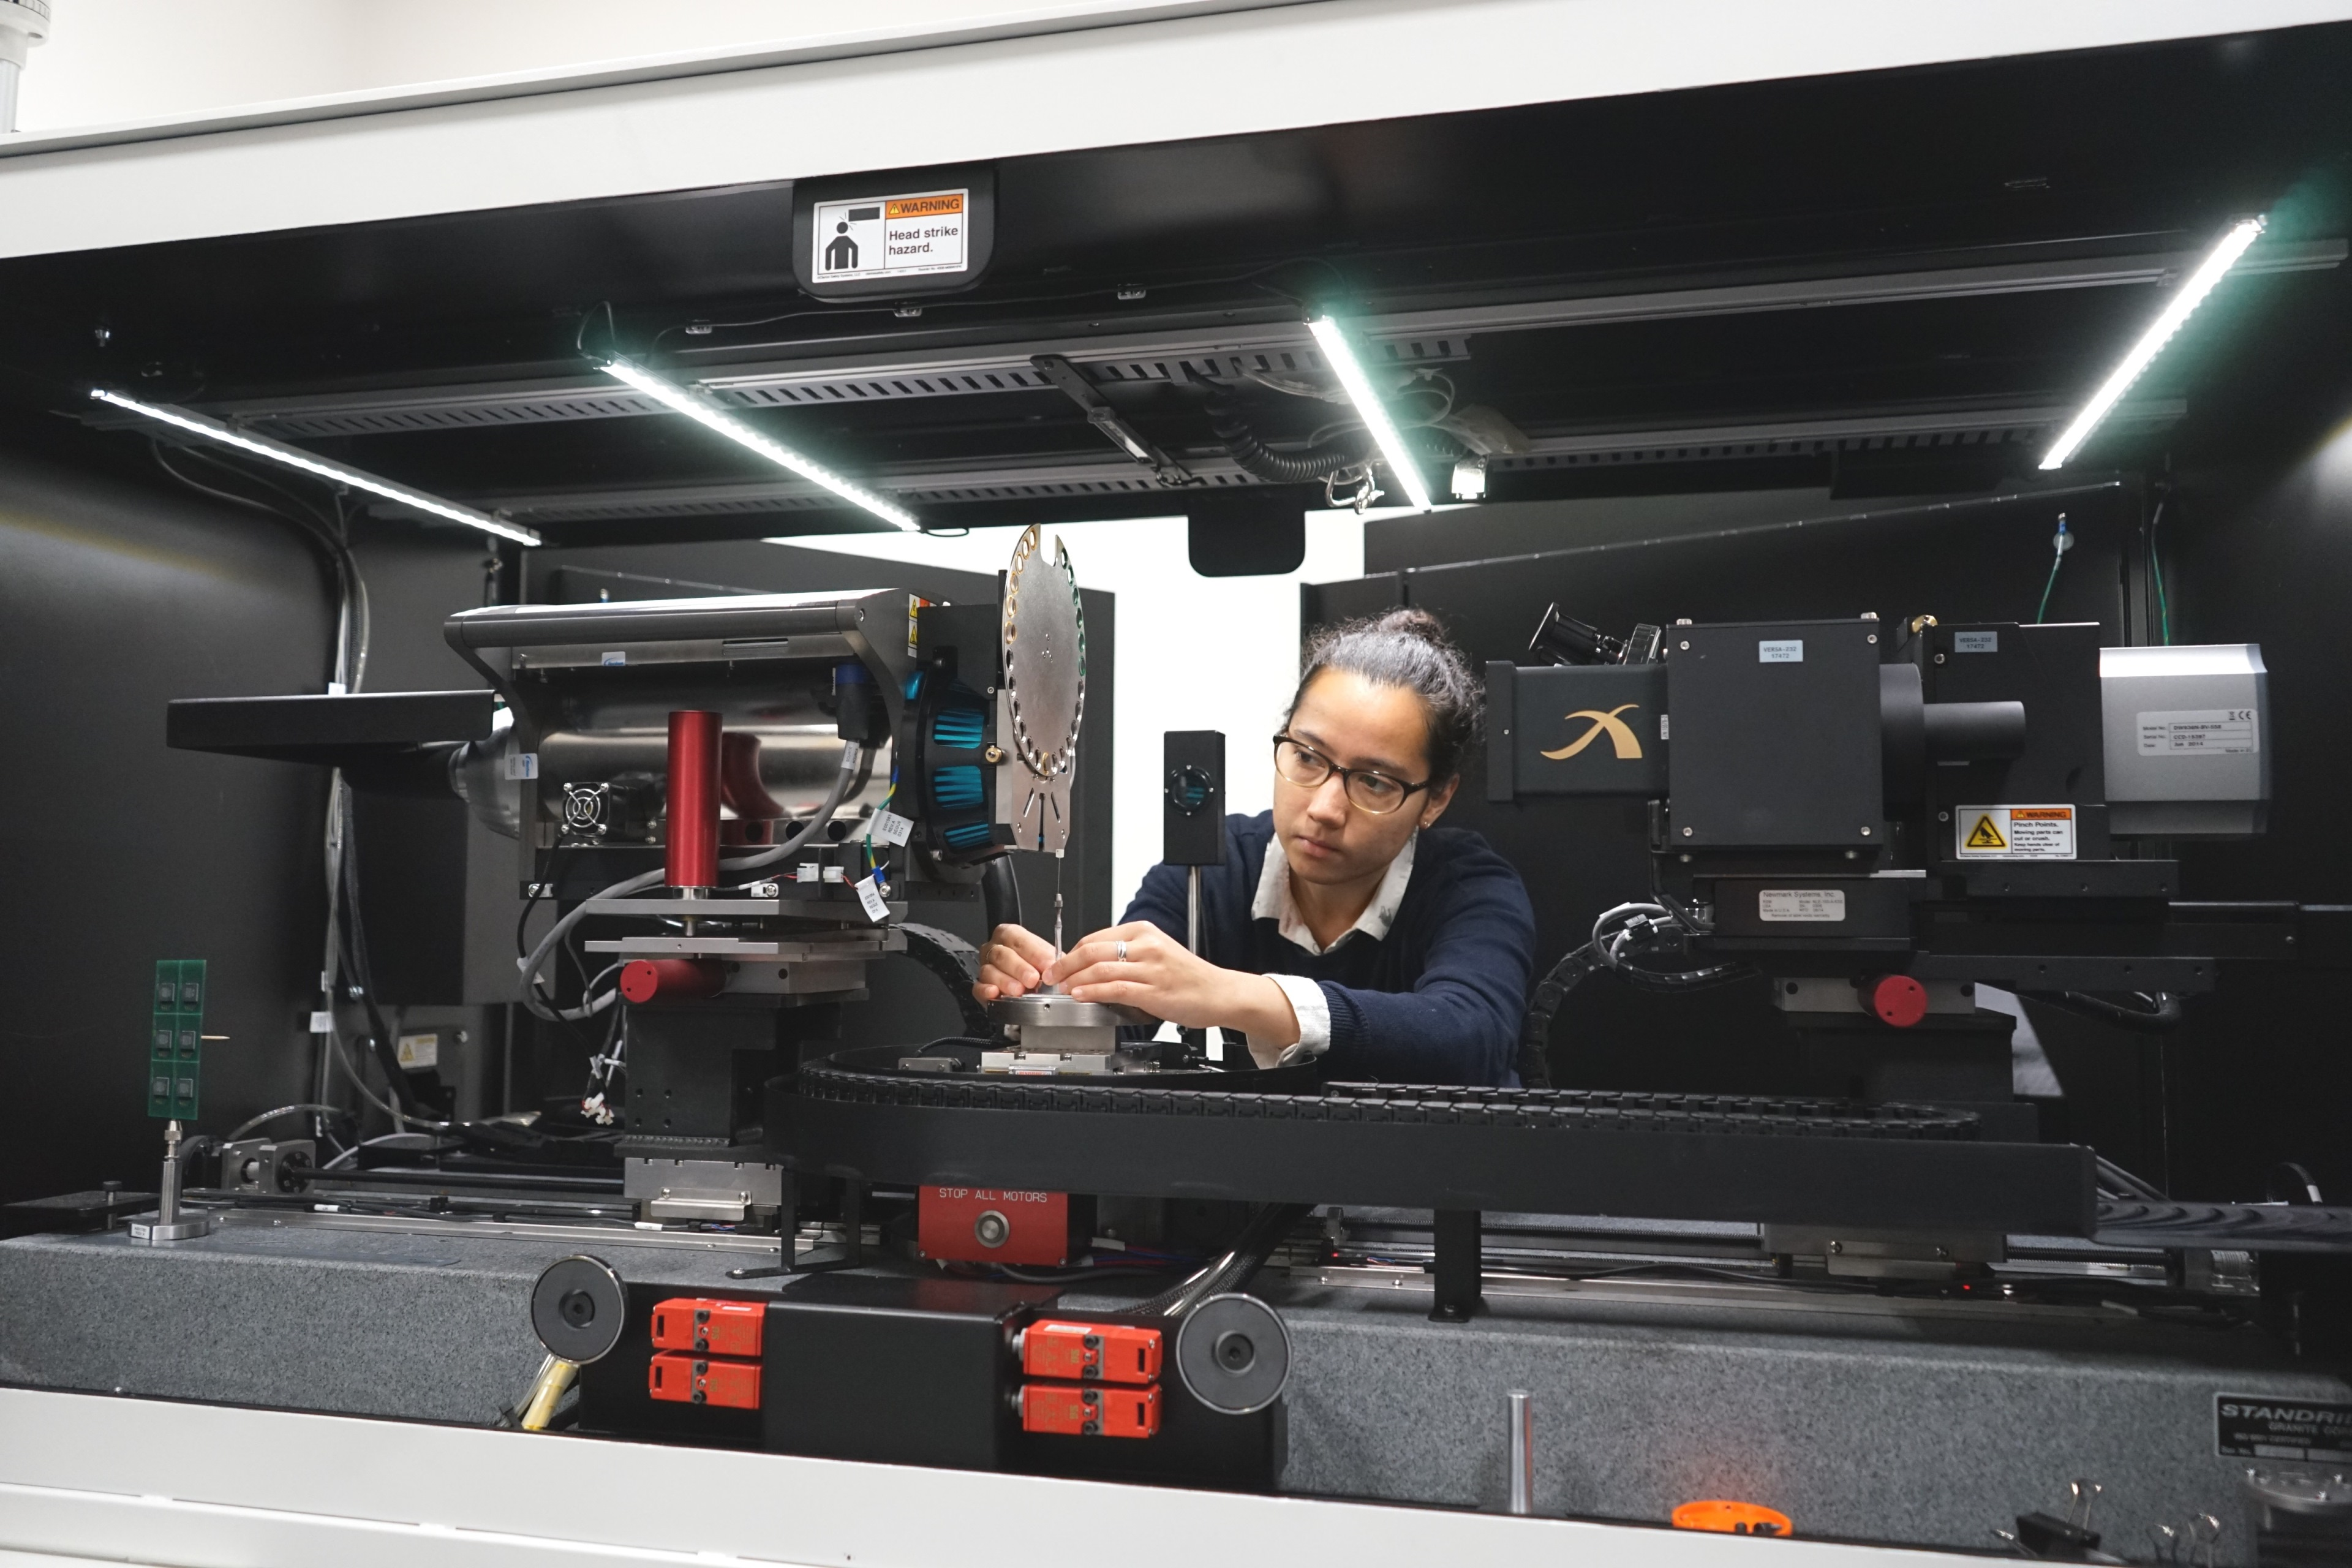 TWI NDT expert using the 3D X-ray microscopy equipment